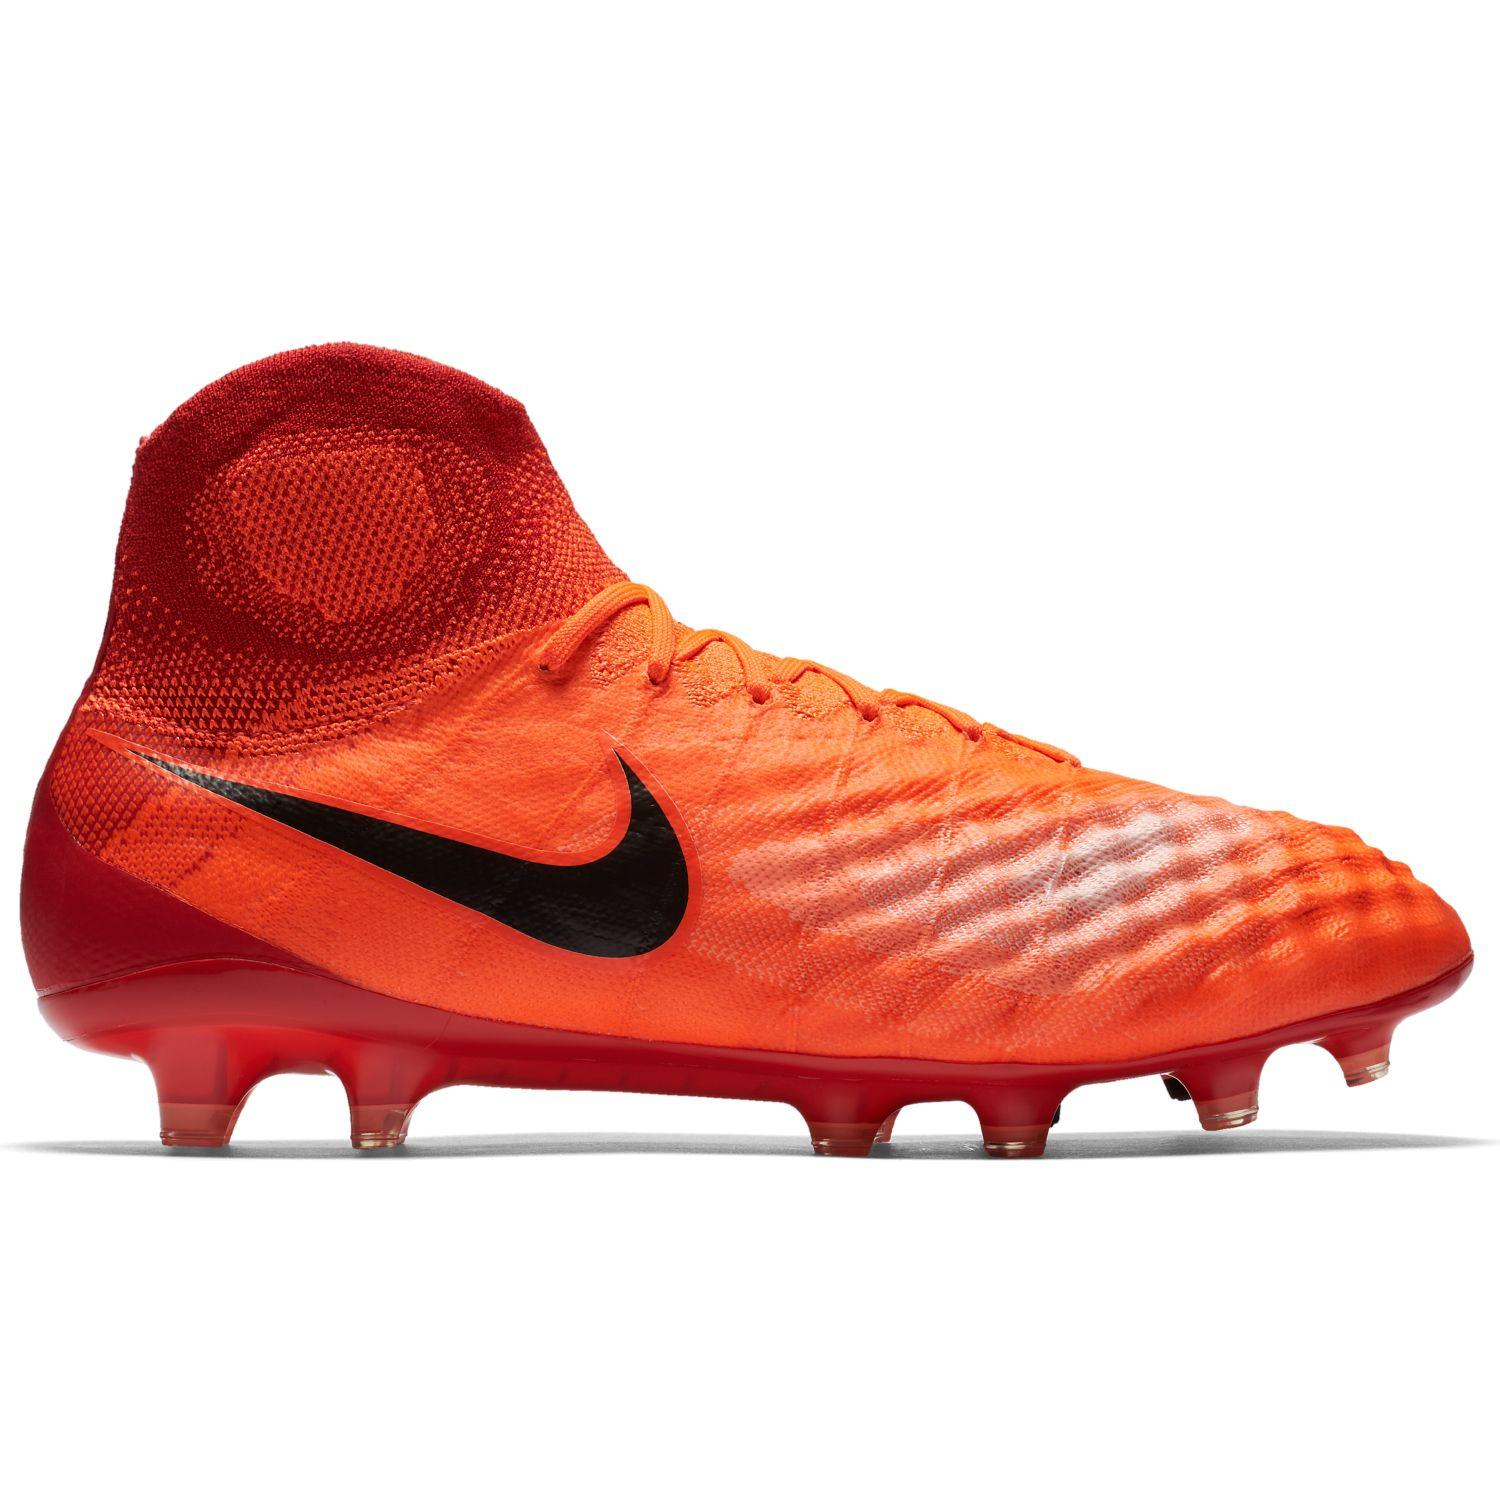 a529f583b9d6 Nike Football Shoes Magista Obra Ii Fg Otal Crimson black-university Red -  Tifoshop.com